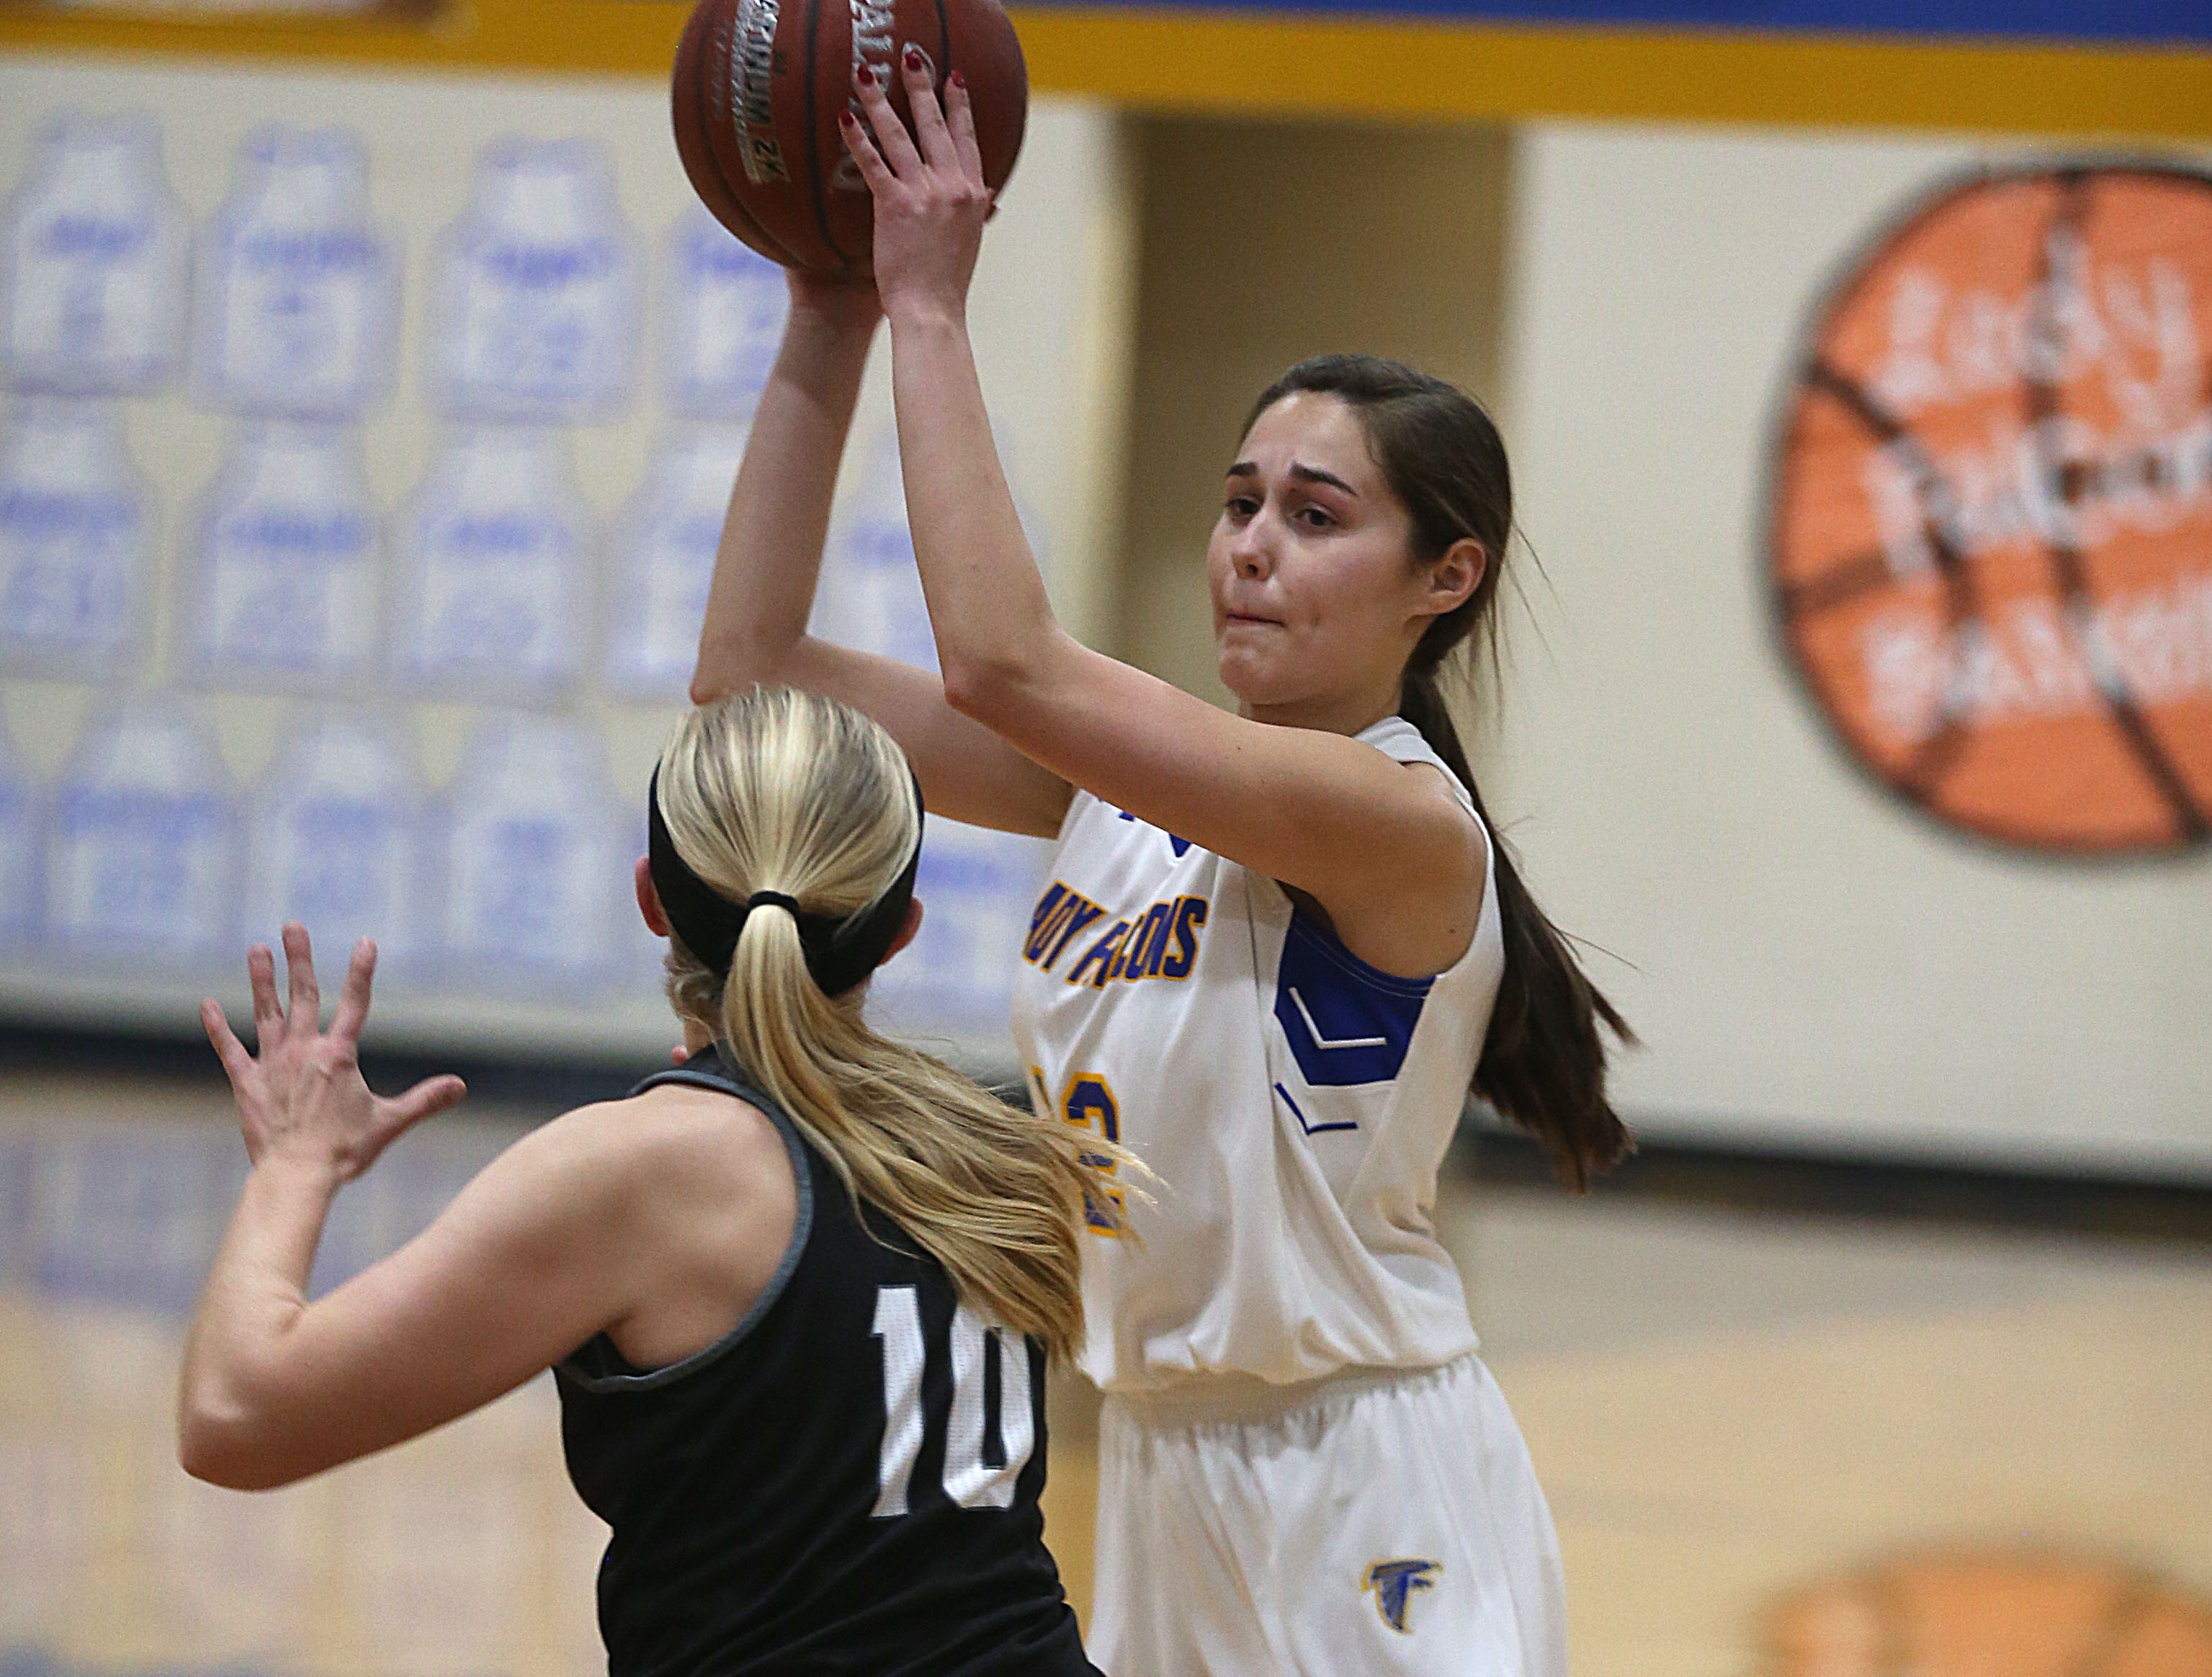 Veribest's A. Martinez (#12) is blocked by Water Valley's Brittany Sutton (#10) Tuesday, Jan. 8, 2019 during their game in Veribest.